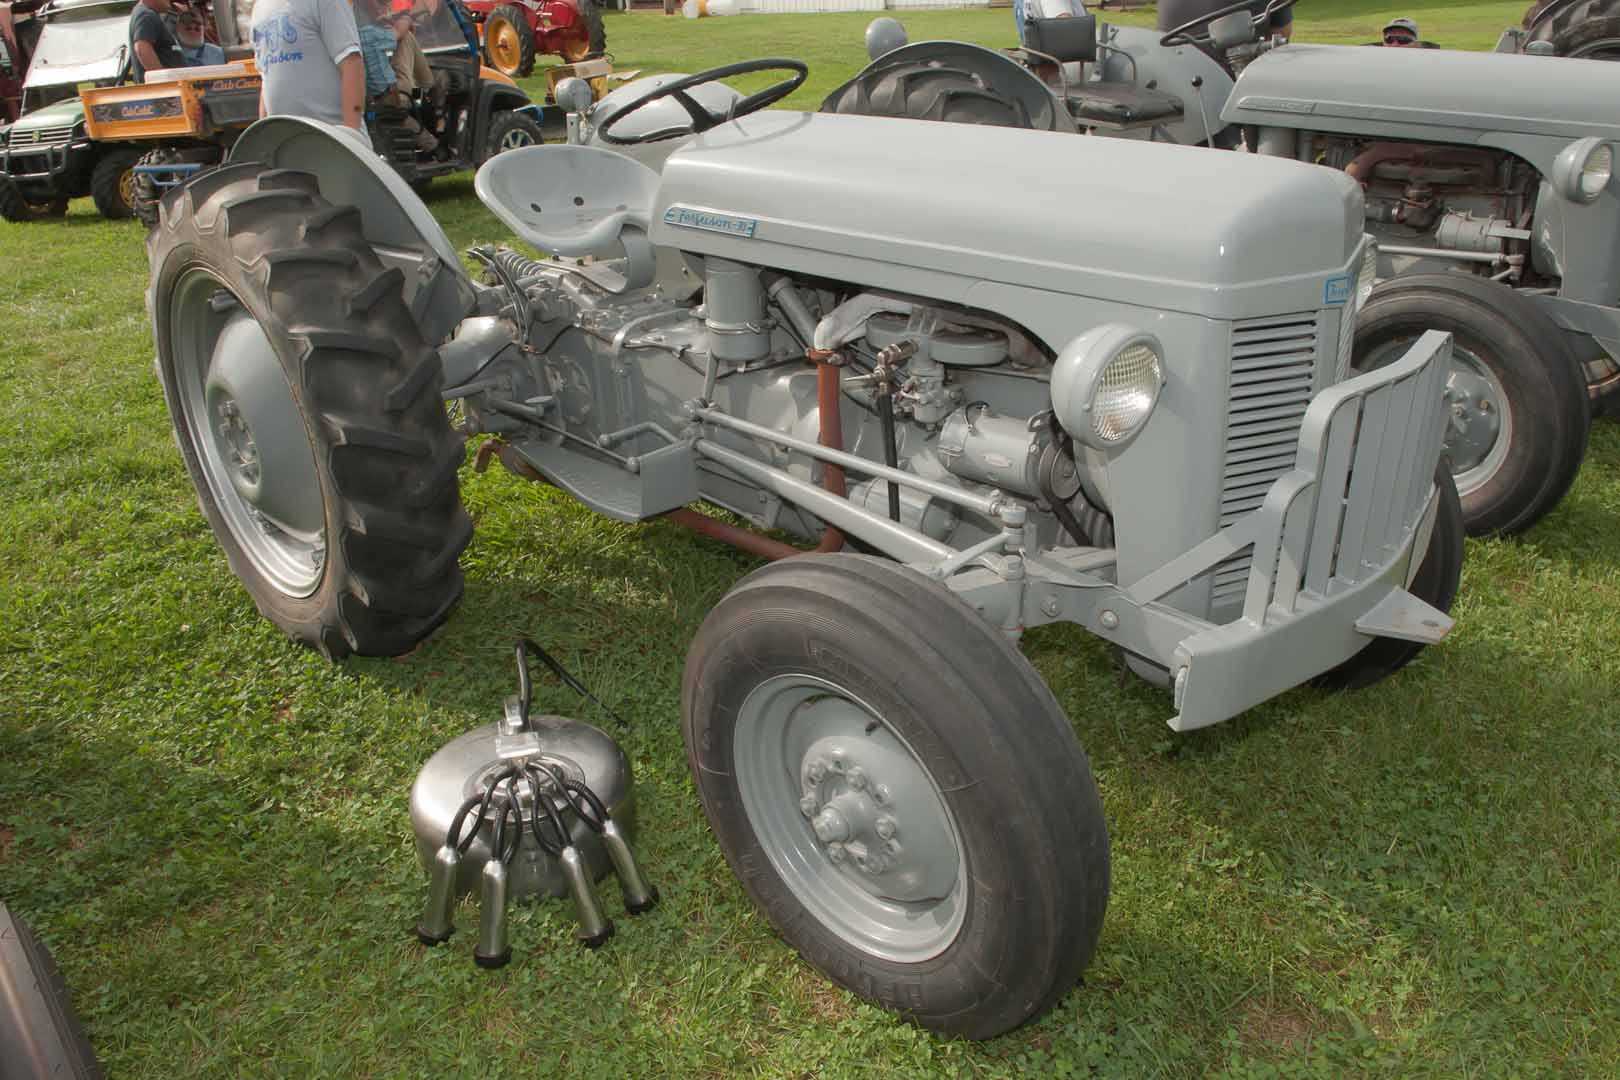 1951 TO-30 SN TO-62612 owned by Megan Kimball and Grandpa Richard of West Liberty, OH.  Vacuum-driven milker sitting next to the tractor.